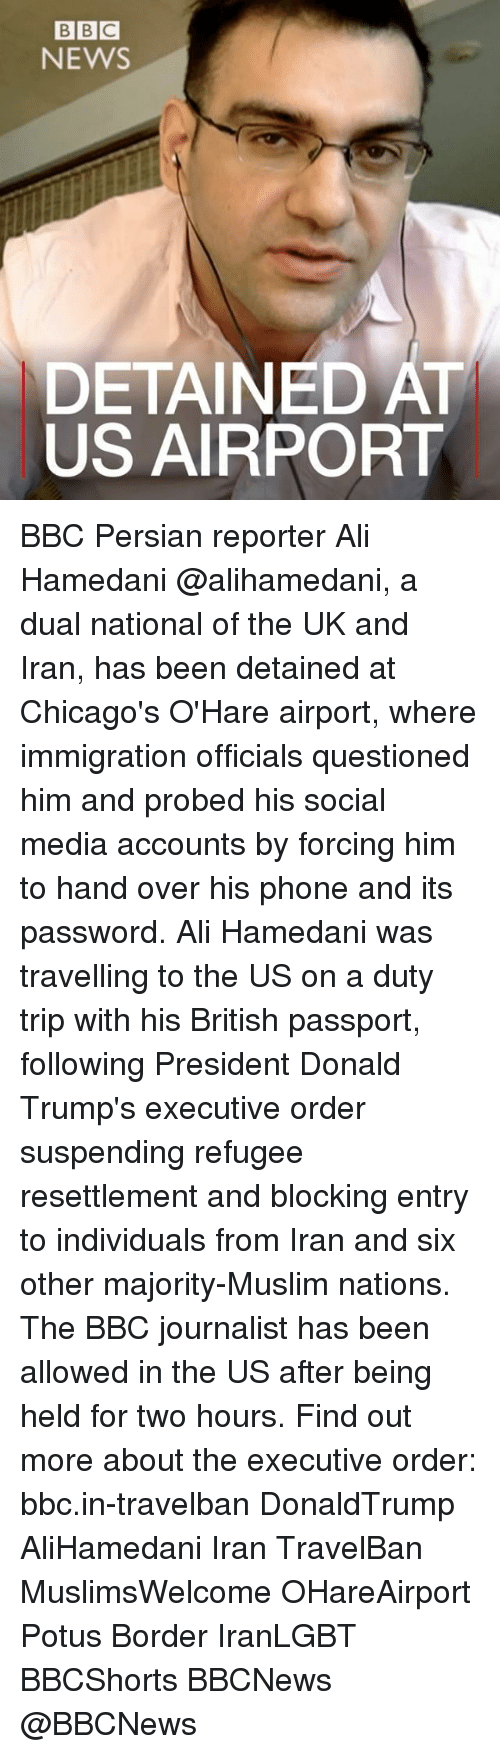 executions: BBC  NEWS  DETAINED AT  US AIRPORT BBC Persian reporter Ali Hamedani @alihamedani, a dual national of the UK and Iran, has been detained at Chicago's O'Hare airport, where immigration officials questioned him and probed his social media accounts by forcing him to hand over his phone and its password. Ali Hamedani was travelling to the US on a duty trip with his British passport, following President Donald Trump's executive order suspending refugee resettlement and blocking entry to individuals from Iran and six other majority-Muslim nations. The BBC journalist has been allowed in the US after being held for two hours. Find out more about the executive order: bbc.in-travelban DonaldTrump AliHamedani Iran TravelBan MuslimsWelcome OHareAirport Potus Border IranLGBT BBCShorts BBCNews @BBCNews